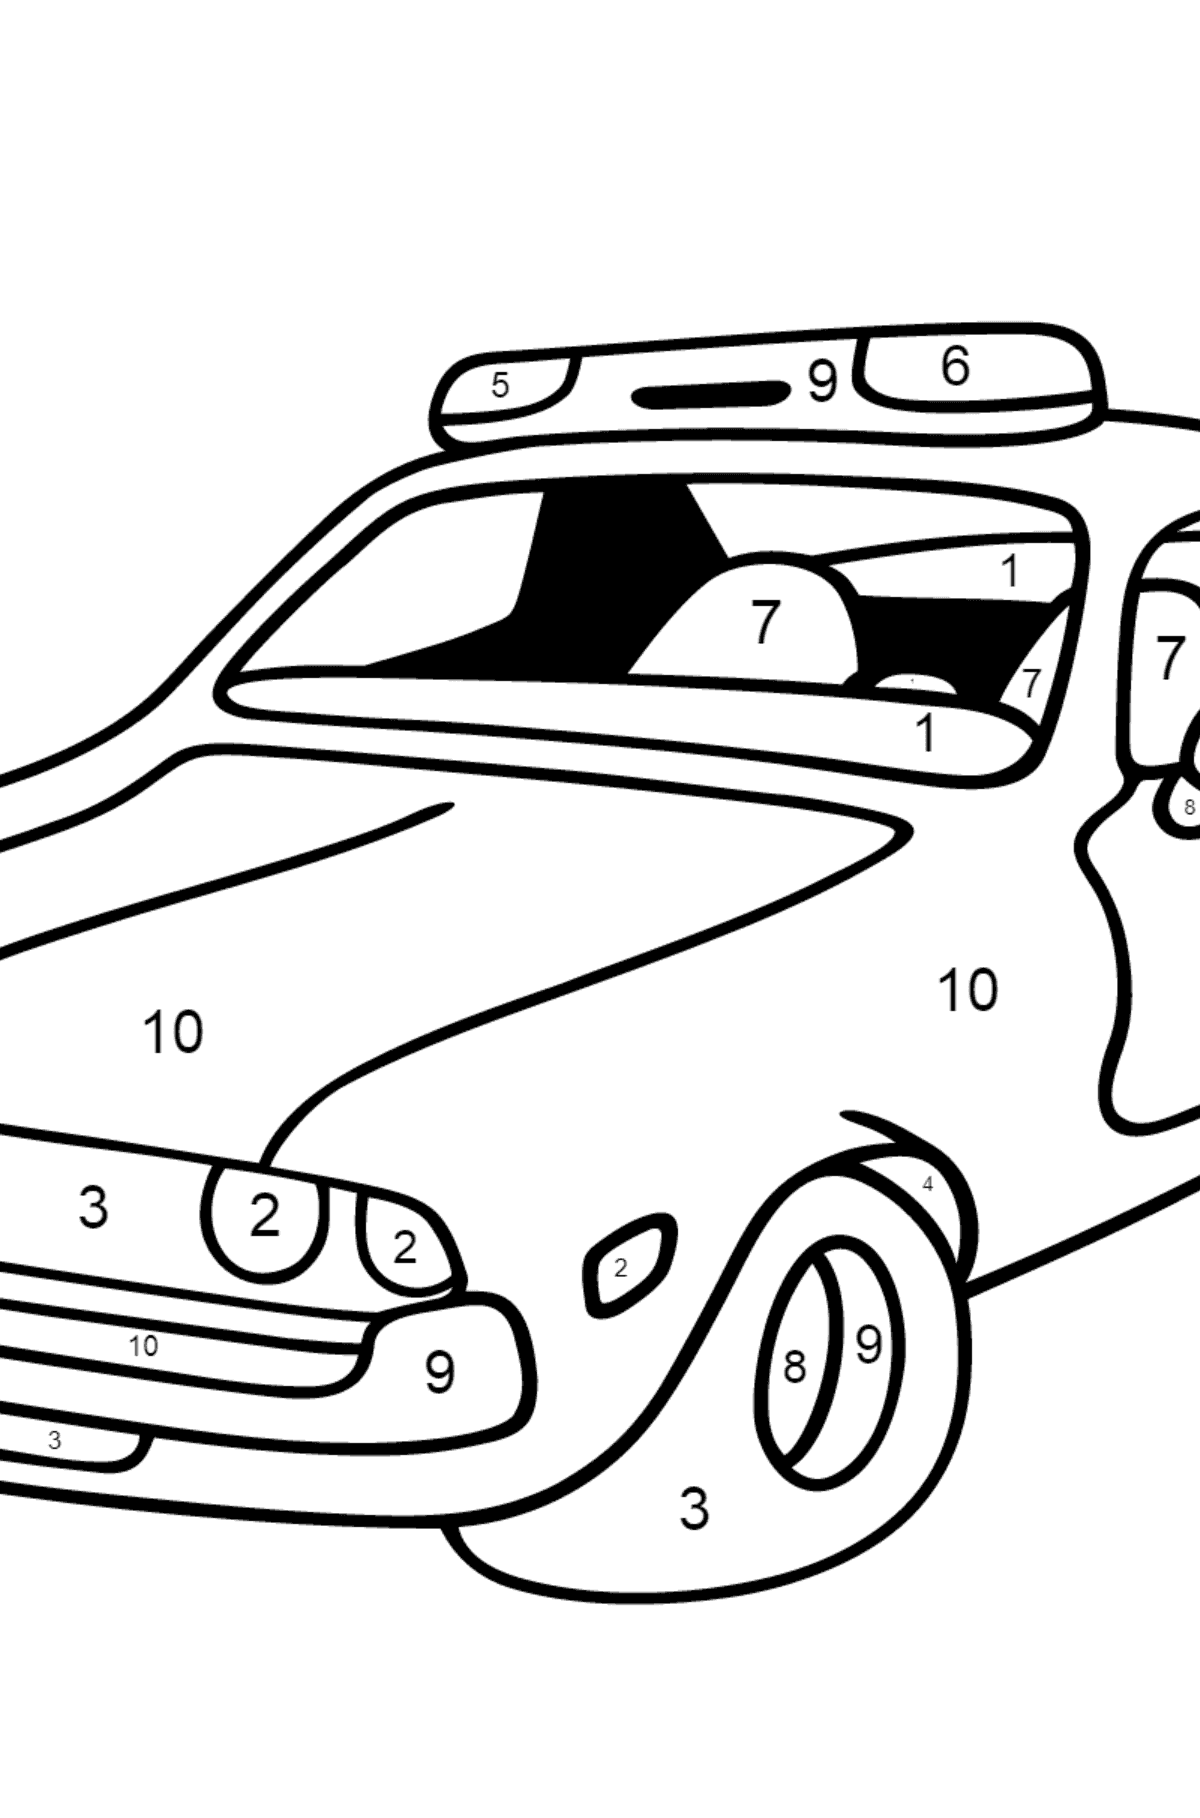 Coloring Page - A Red Police Car for Kids  - Color by Number